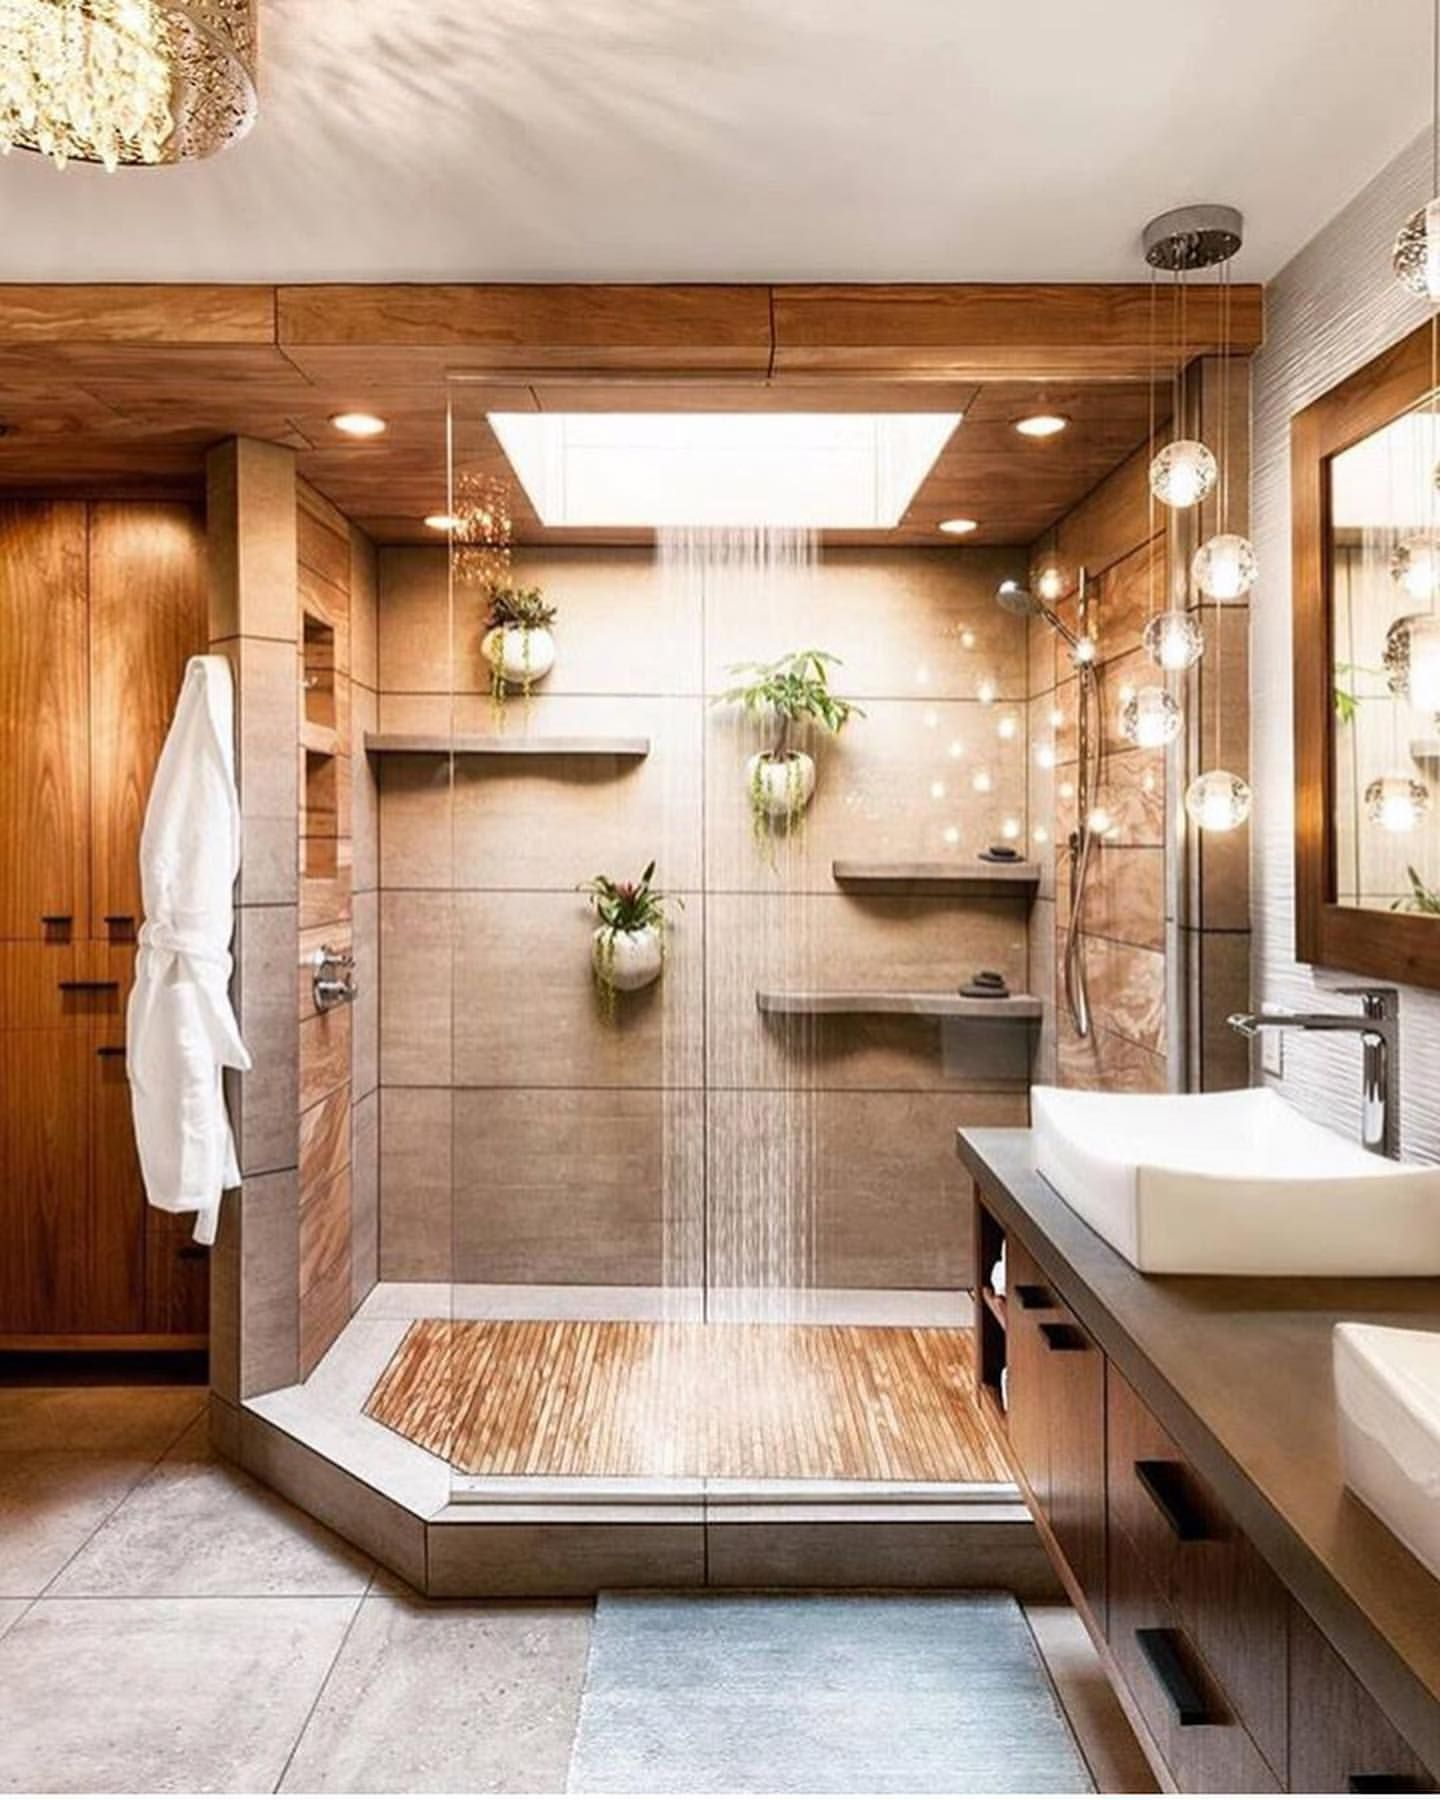 Check out this Bathroom Idea for your projects The post Bathroom Idea  - 262053340756884839 appeared first on My Building Plans South Africa.